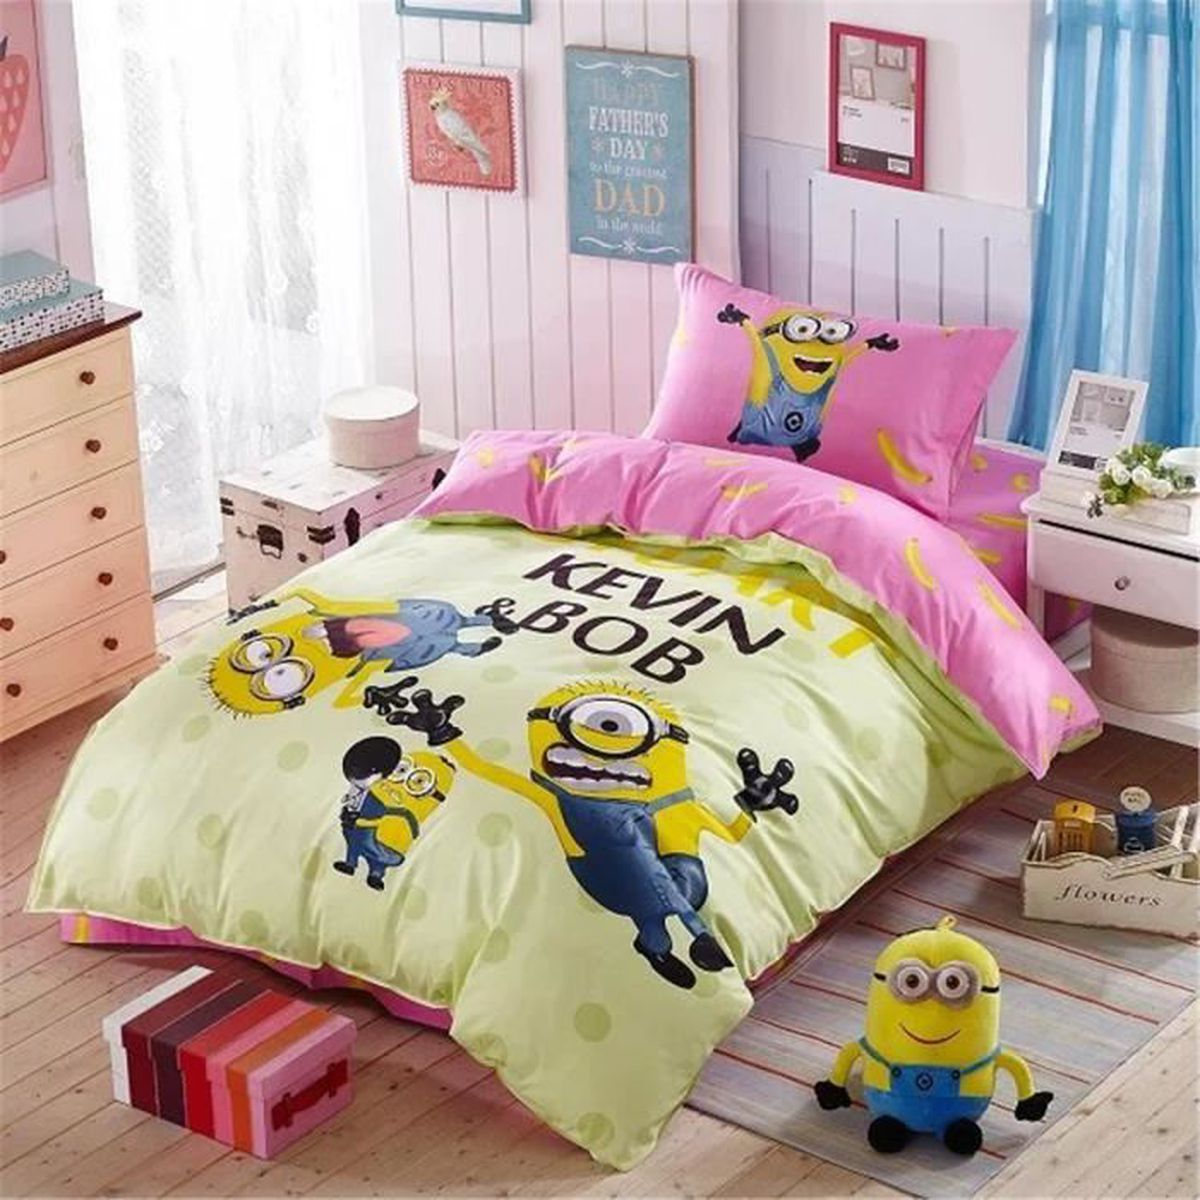 parure de lit parure de couette minions enfant 100 coton 1 housse de couette 140x200cm 1 taie. Black Bedroom Furniture Sets. Home Design Ideas